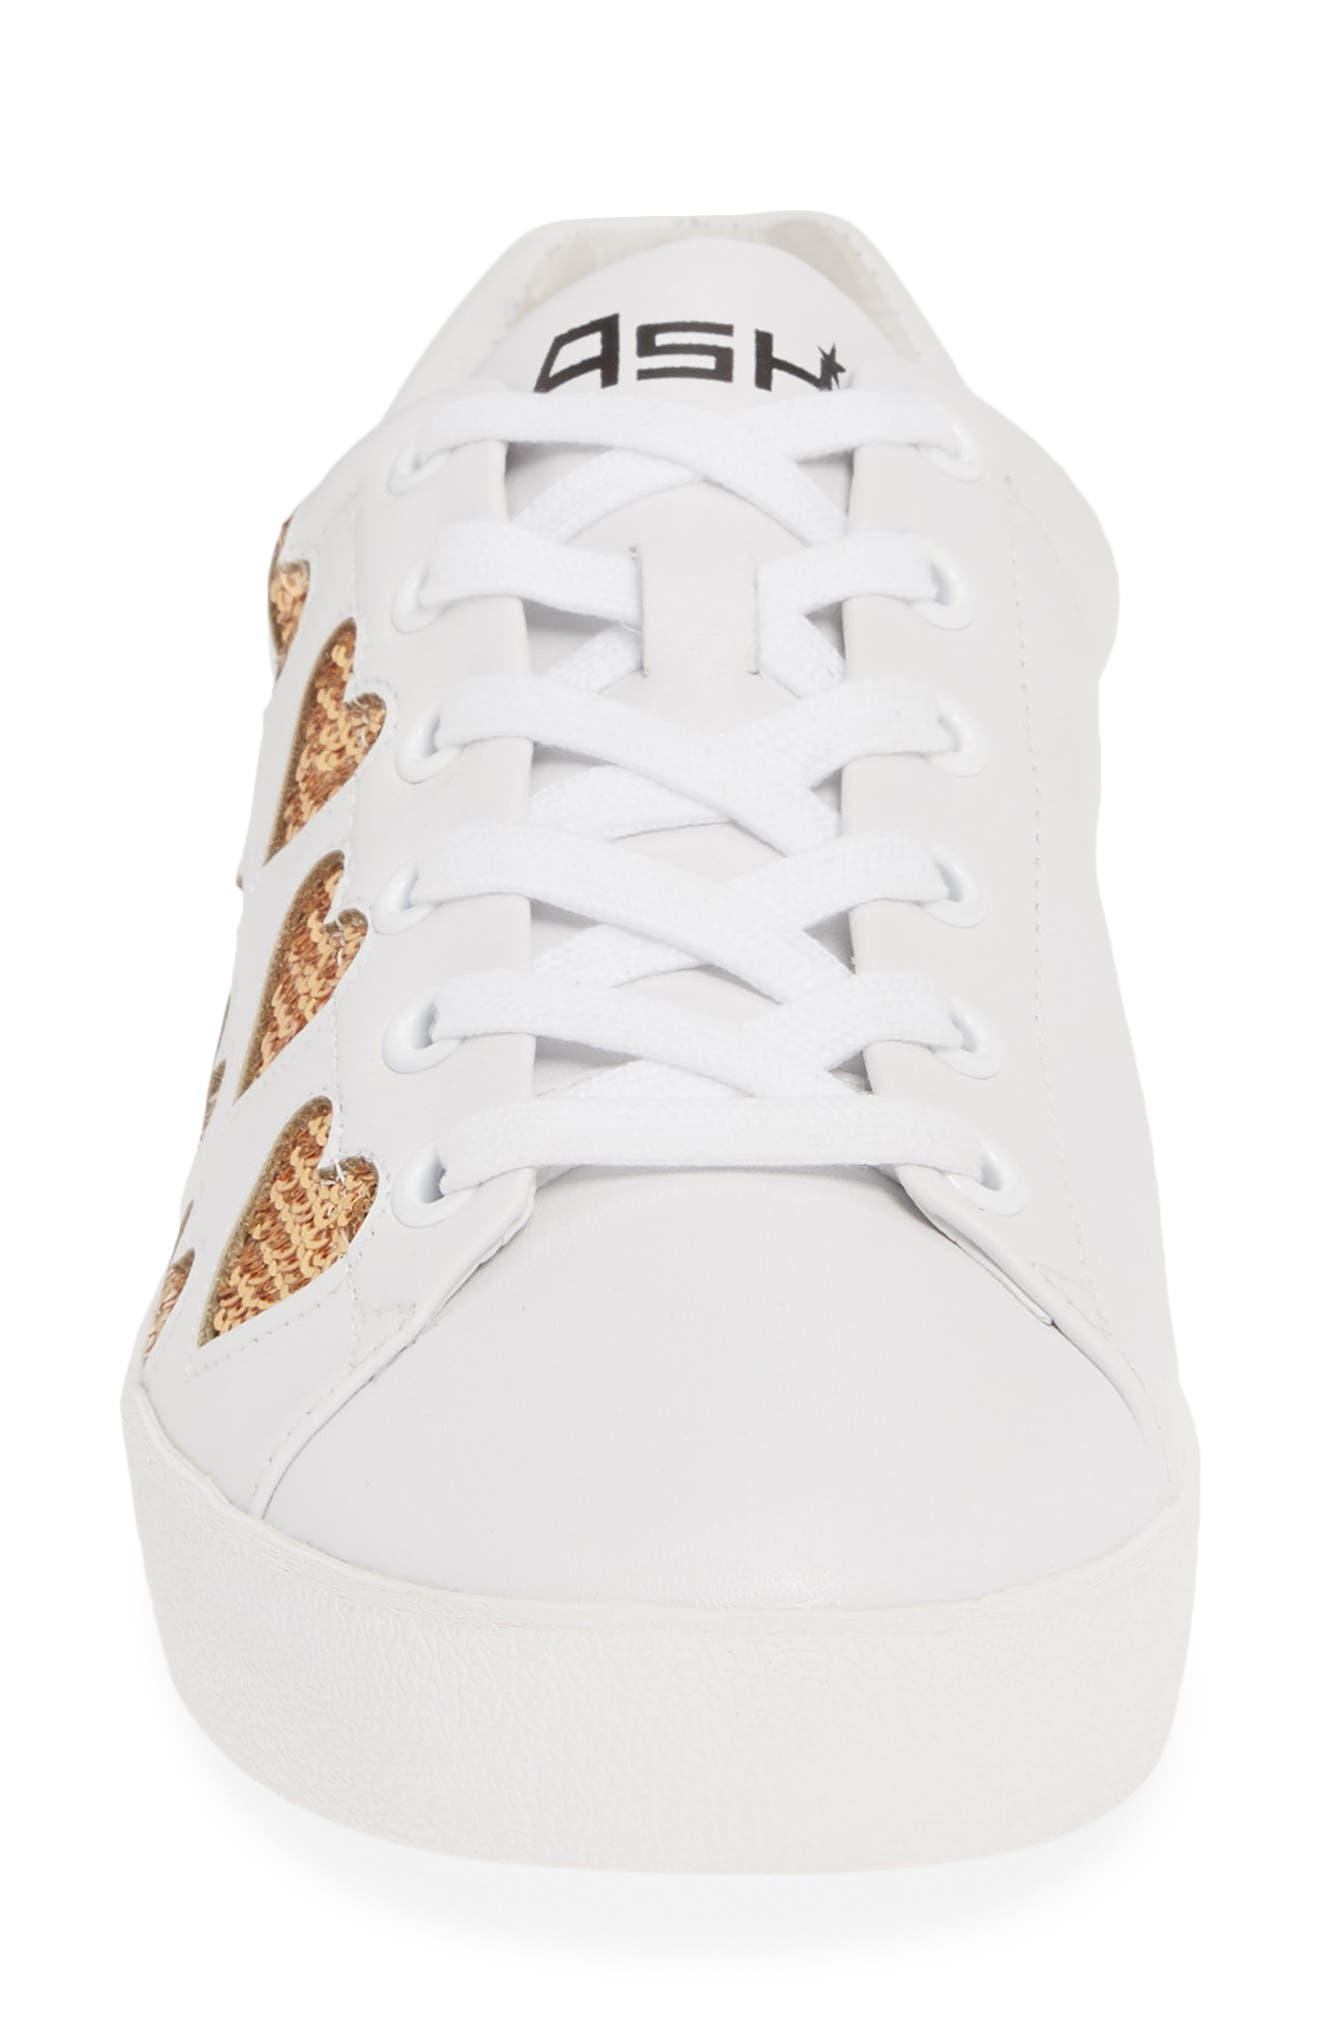 Nikita Sequin Heart Sneaker,                             Alternate thumbnail 4, color,                             WHITE LEATHER/ GOLD